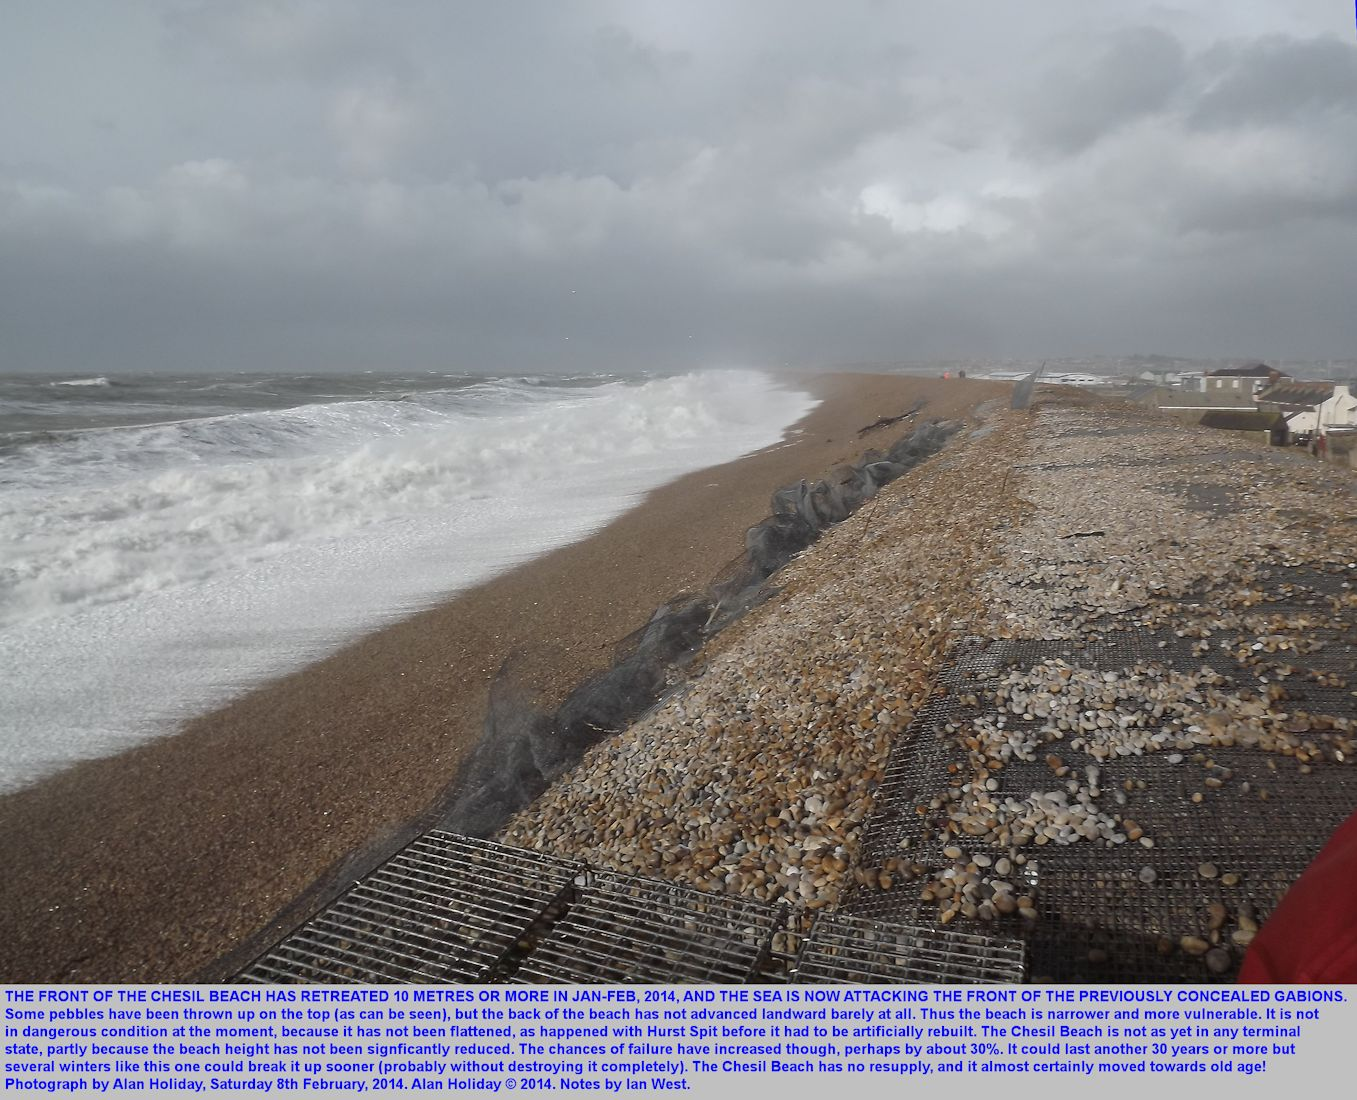 The front of the Chesil Beach at Chiswell has retreated to the gabions but the back has not accreted; the beach here is now in decline, photograph Alan Holiday, 8th February 2014